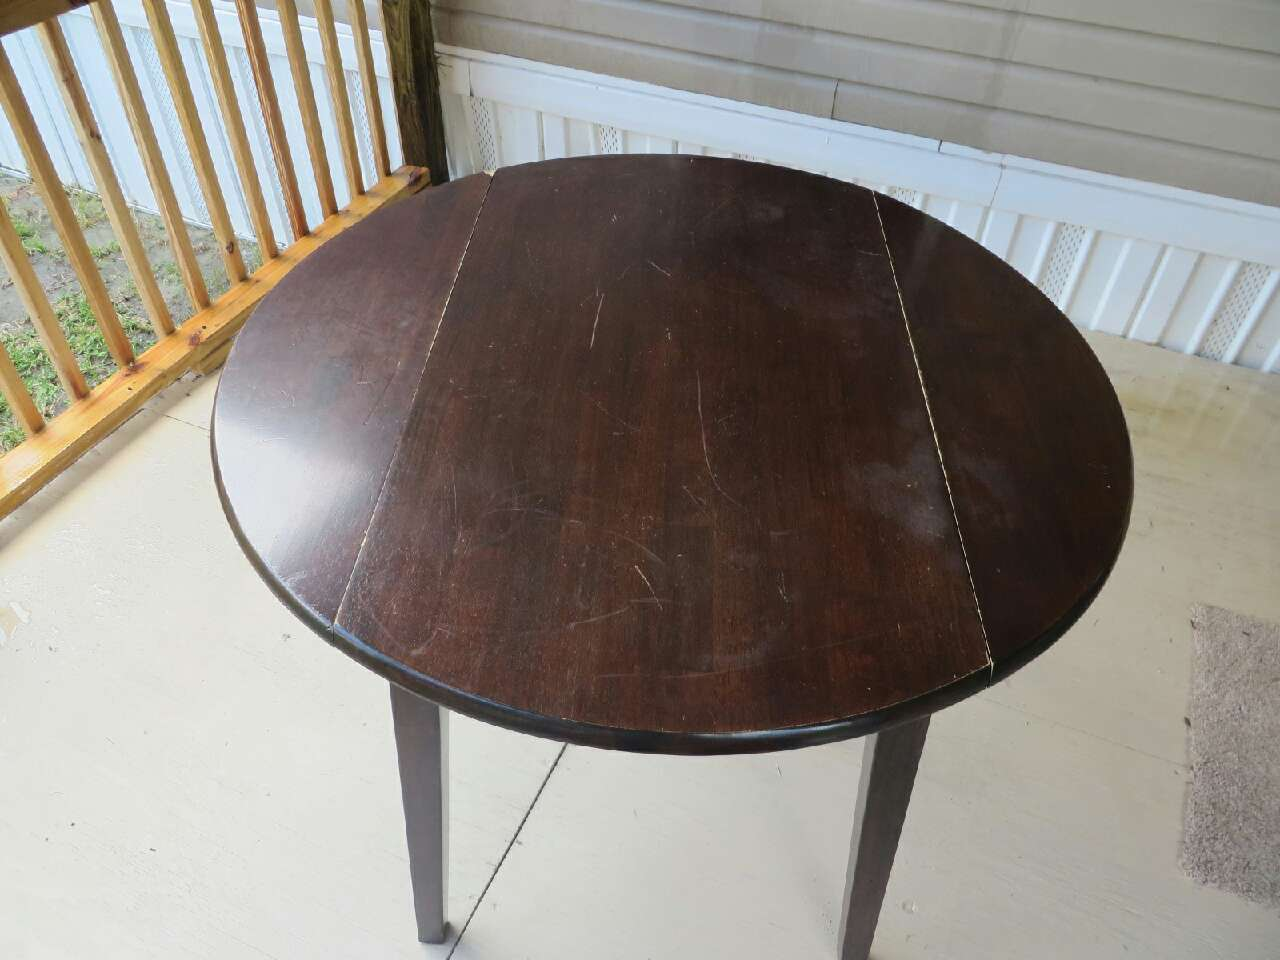 letgo round dining table dark solid woo in mulberry fl. Black Bedroom Furniture Sets. Home Design Ideas